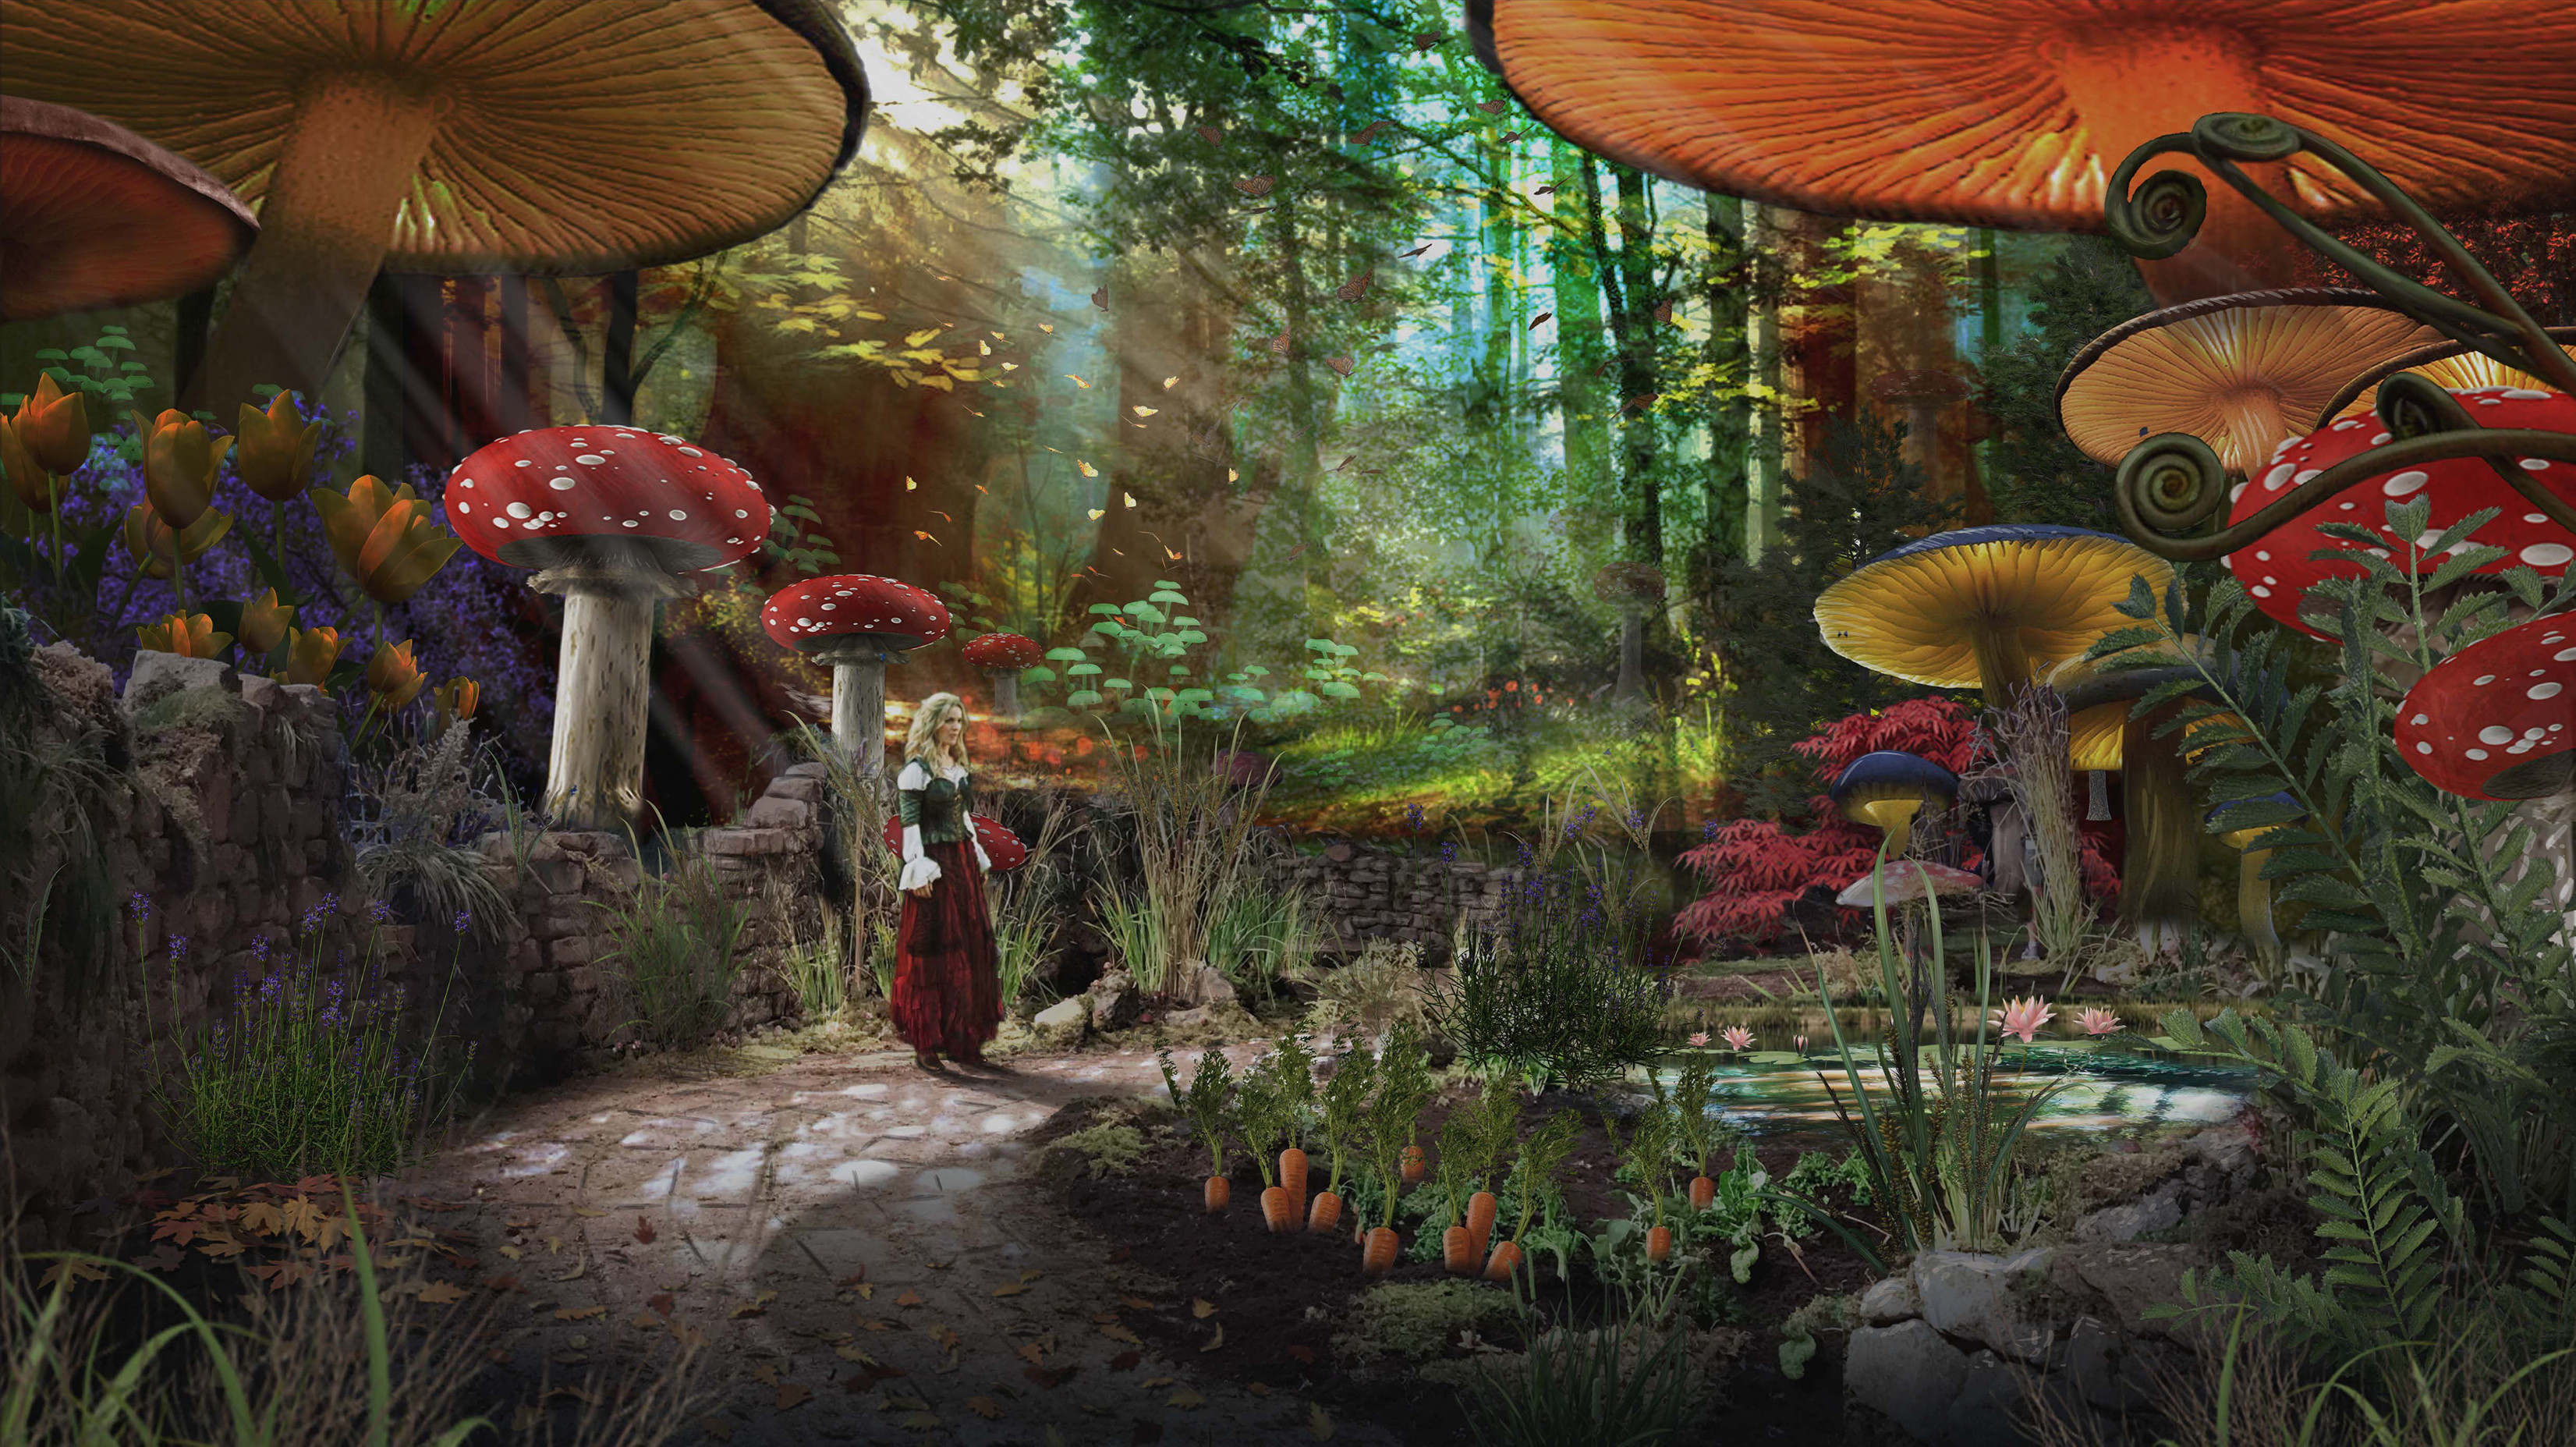 Wonderland Reverse View Concept for  ABC's Once Upon a Time Season 7 - 3D Geo / Rendering Chad Harms